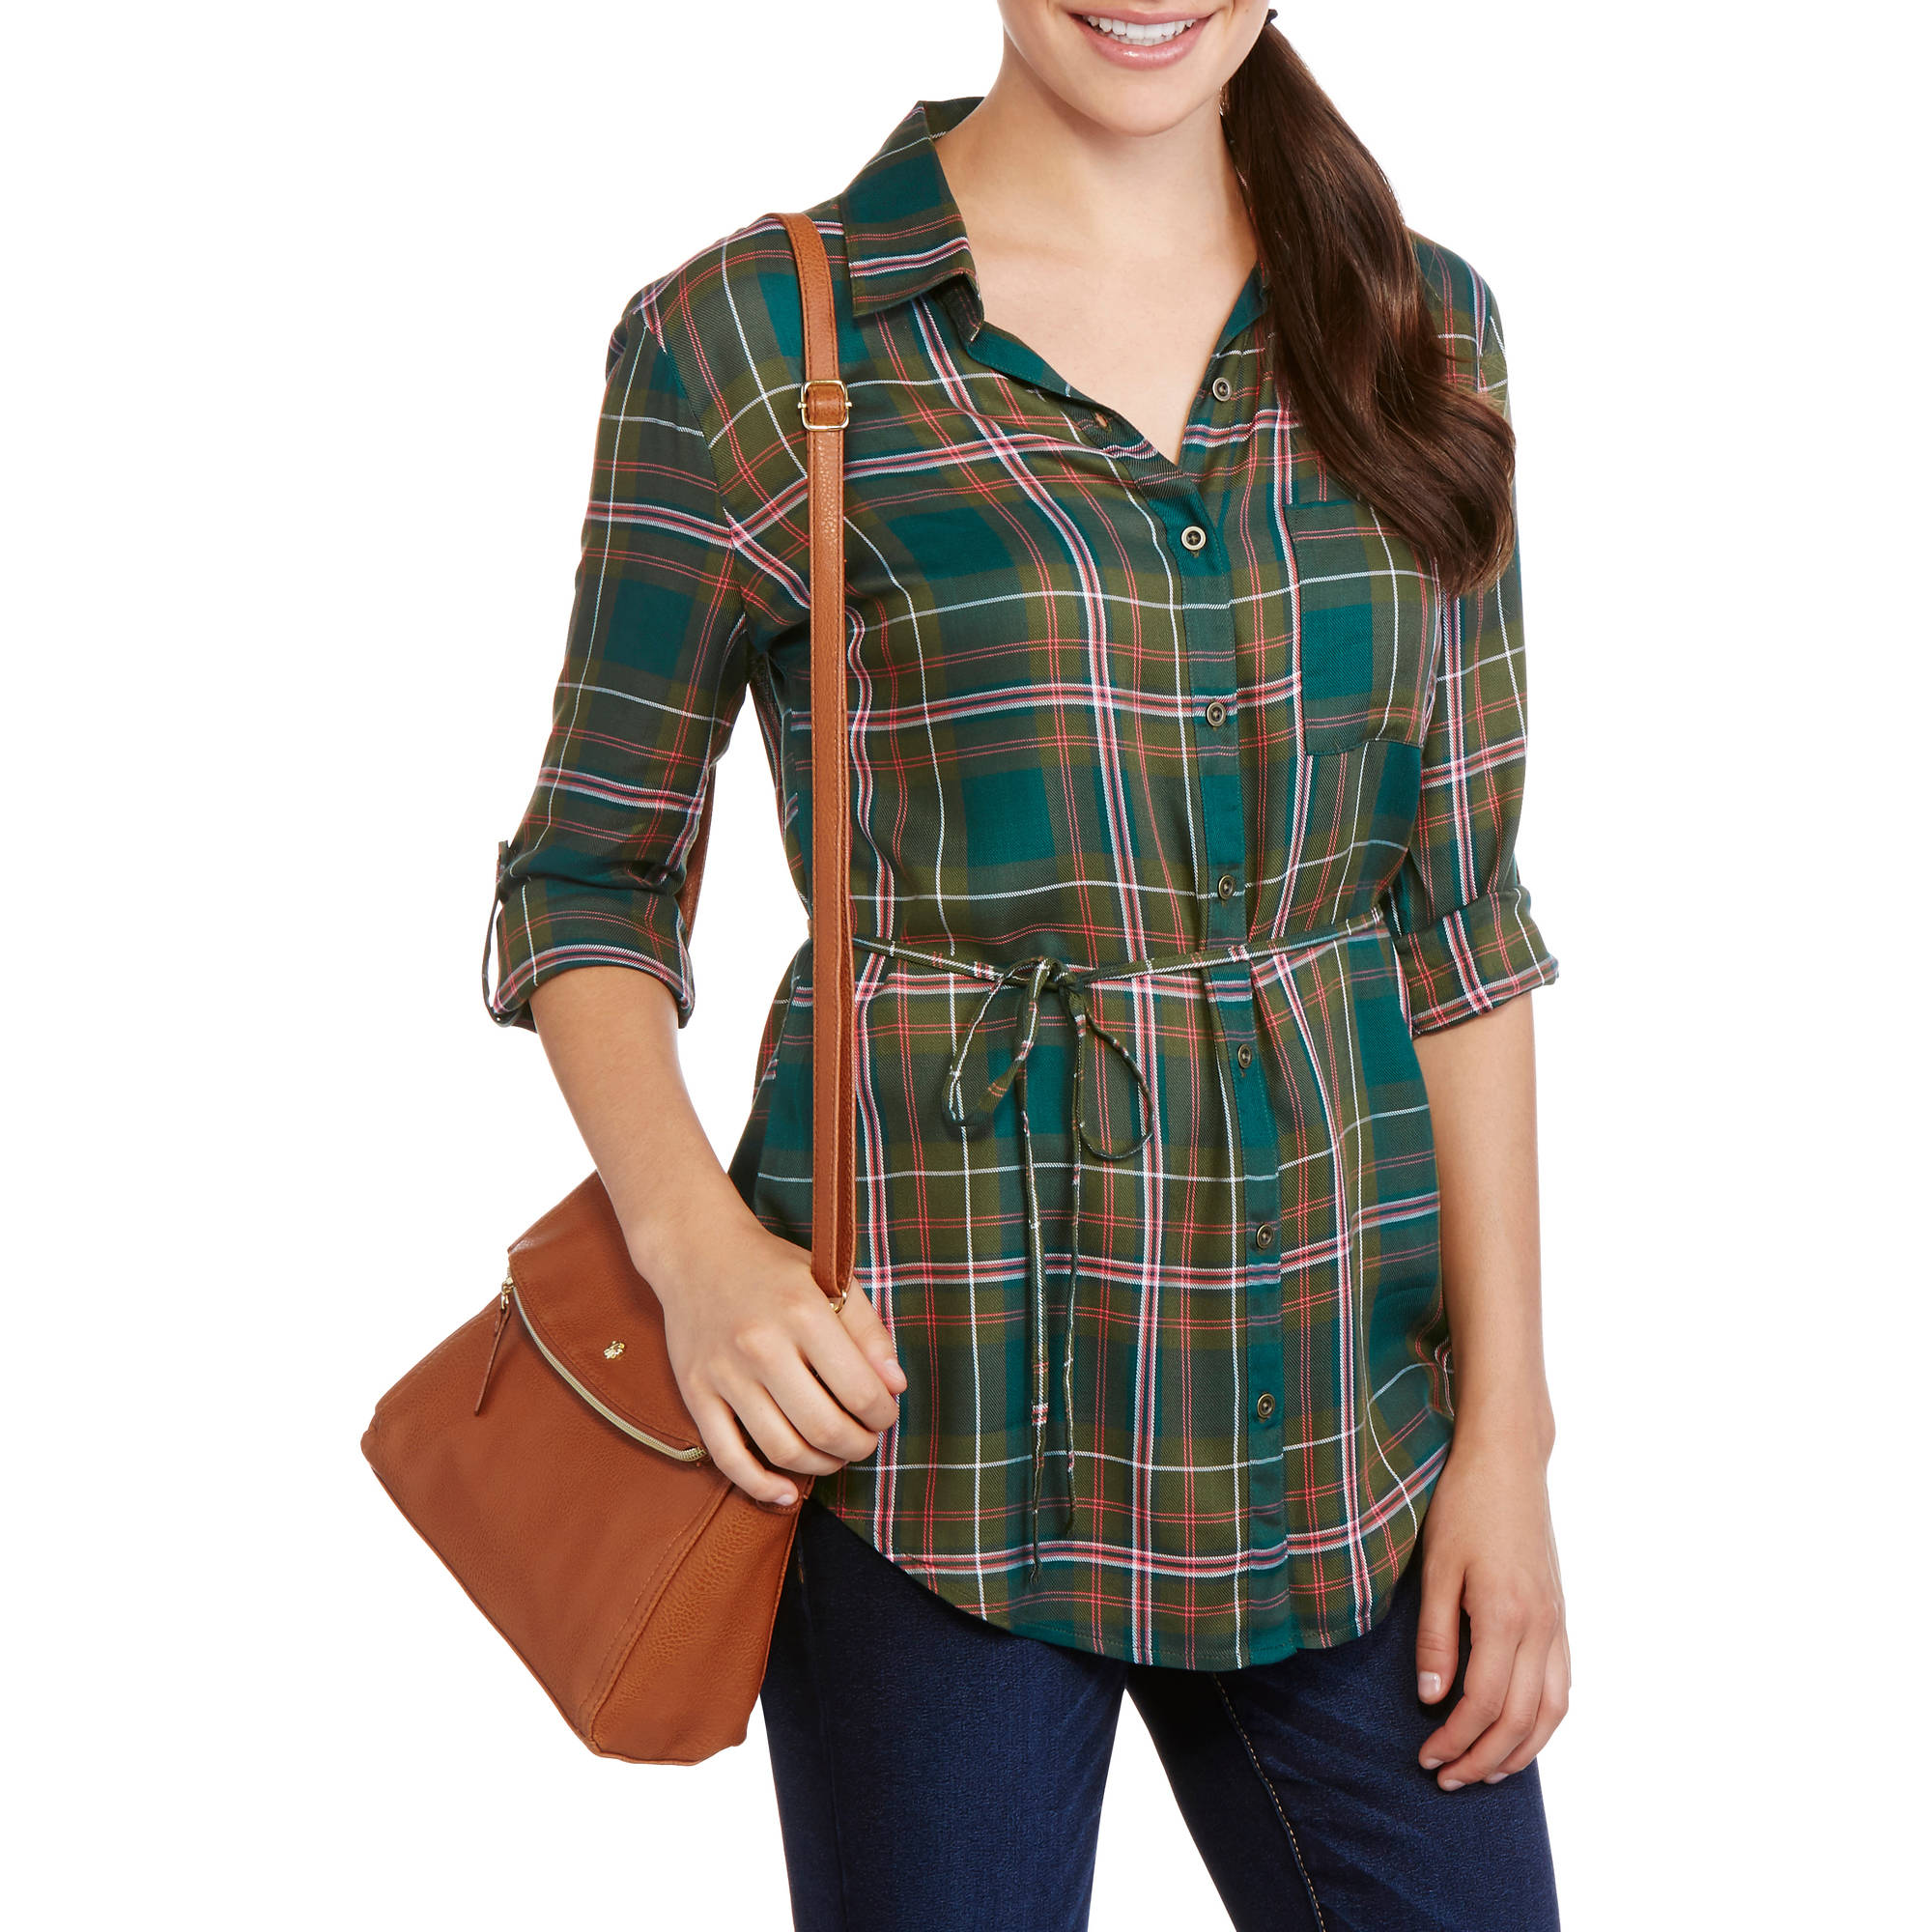 Faded Glory Women's Lightweight Tunic Shirt